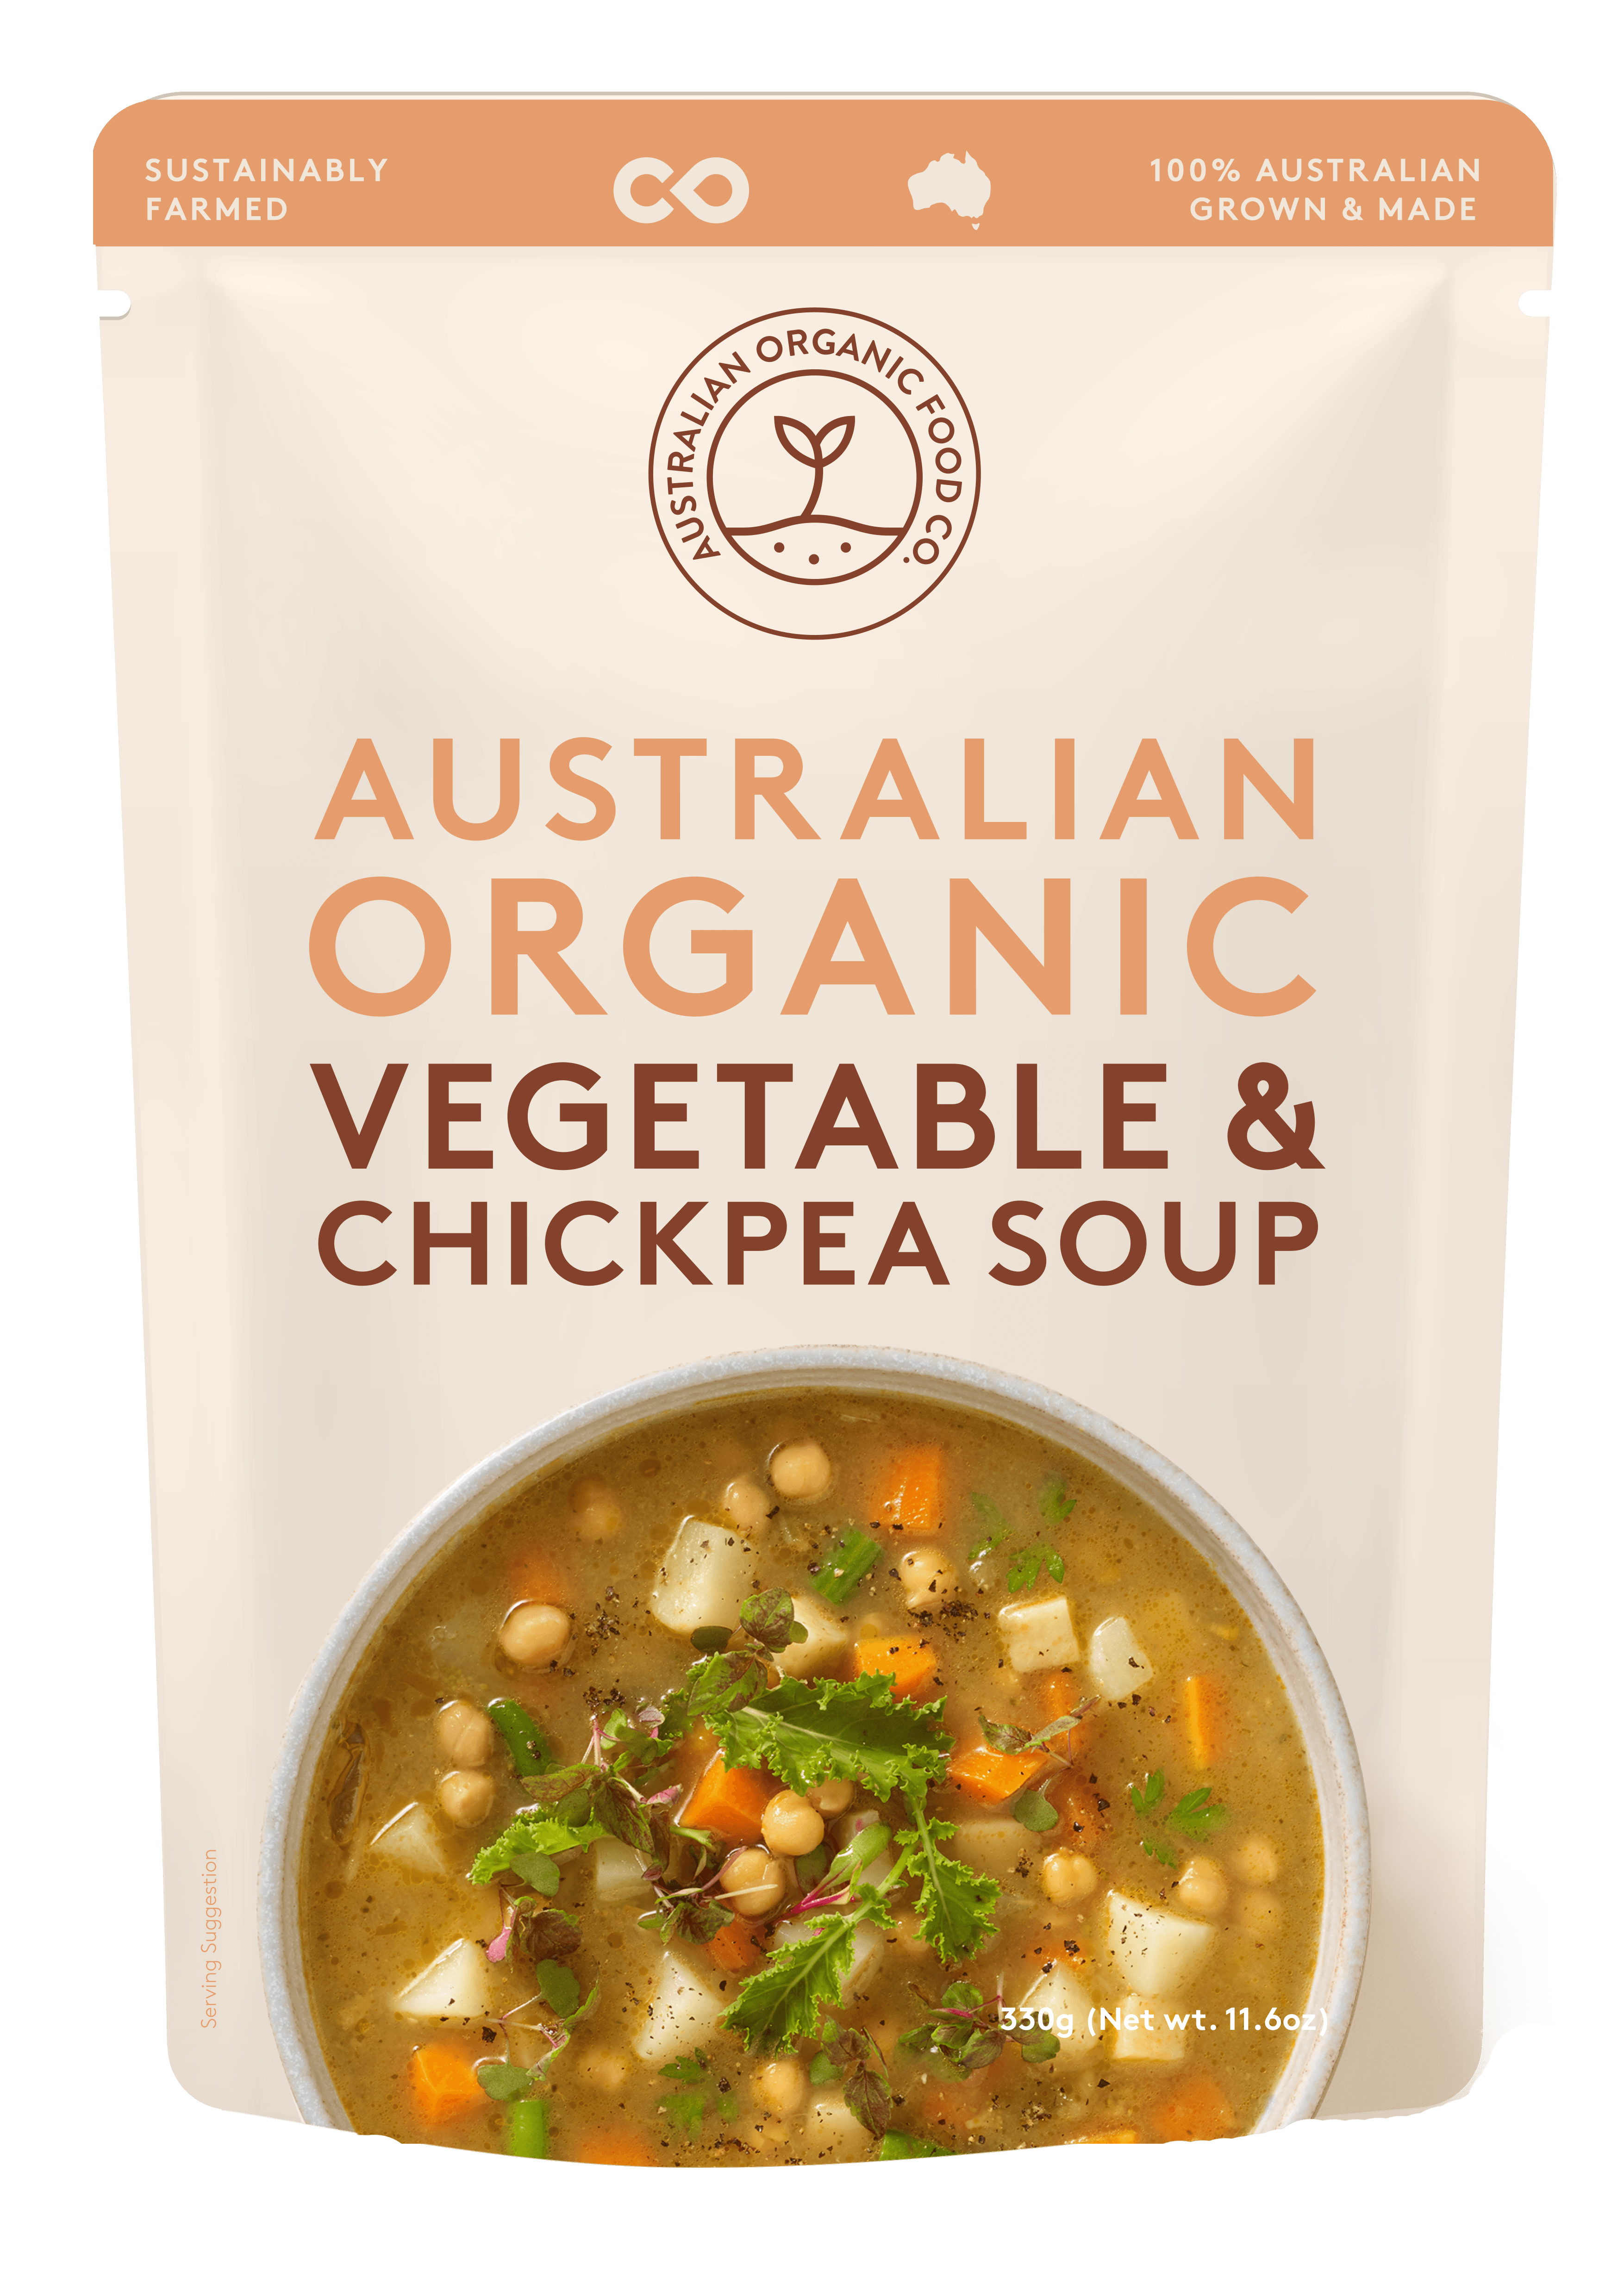 Chickpea & Vegetable Soup